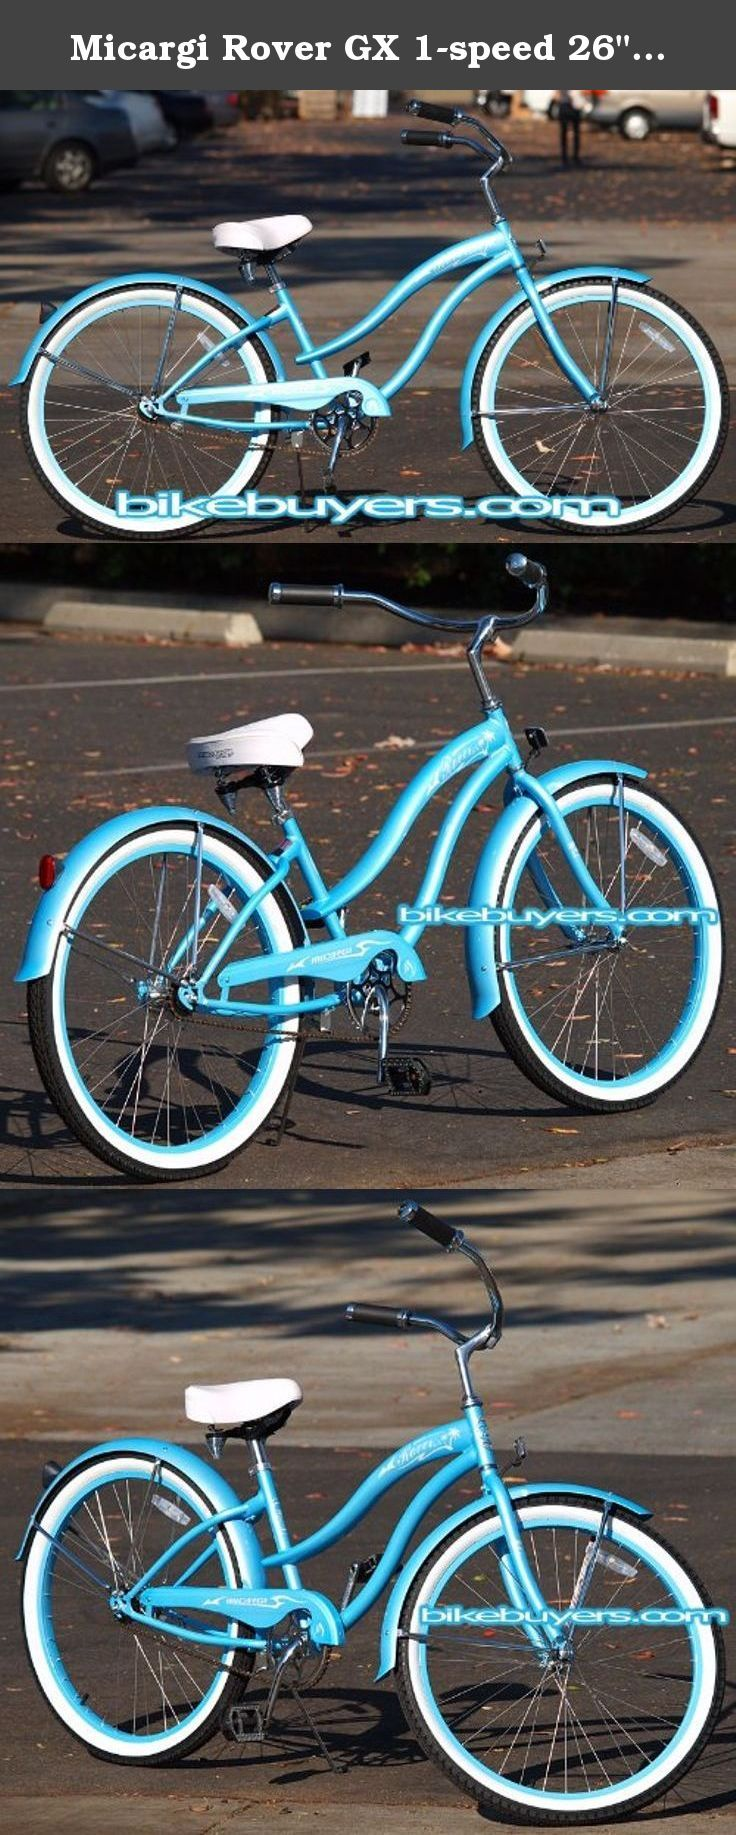 1033 best cruiser bikes bikes cycling outdoor recreation sports outdoors images on pinterest outdoor recreation cruiser bikes and beach cruisers